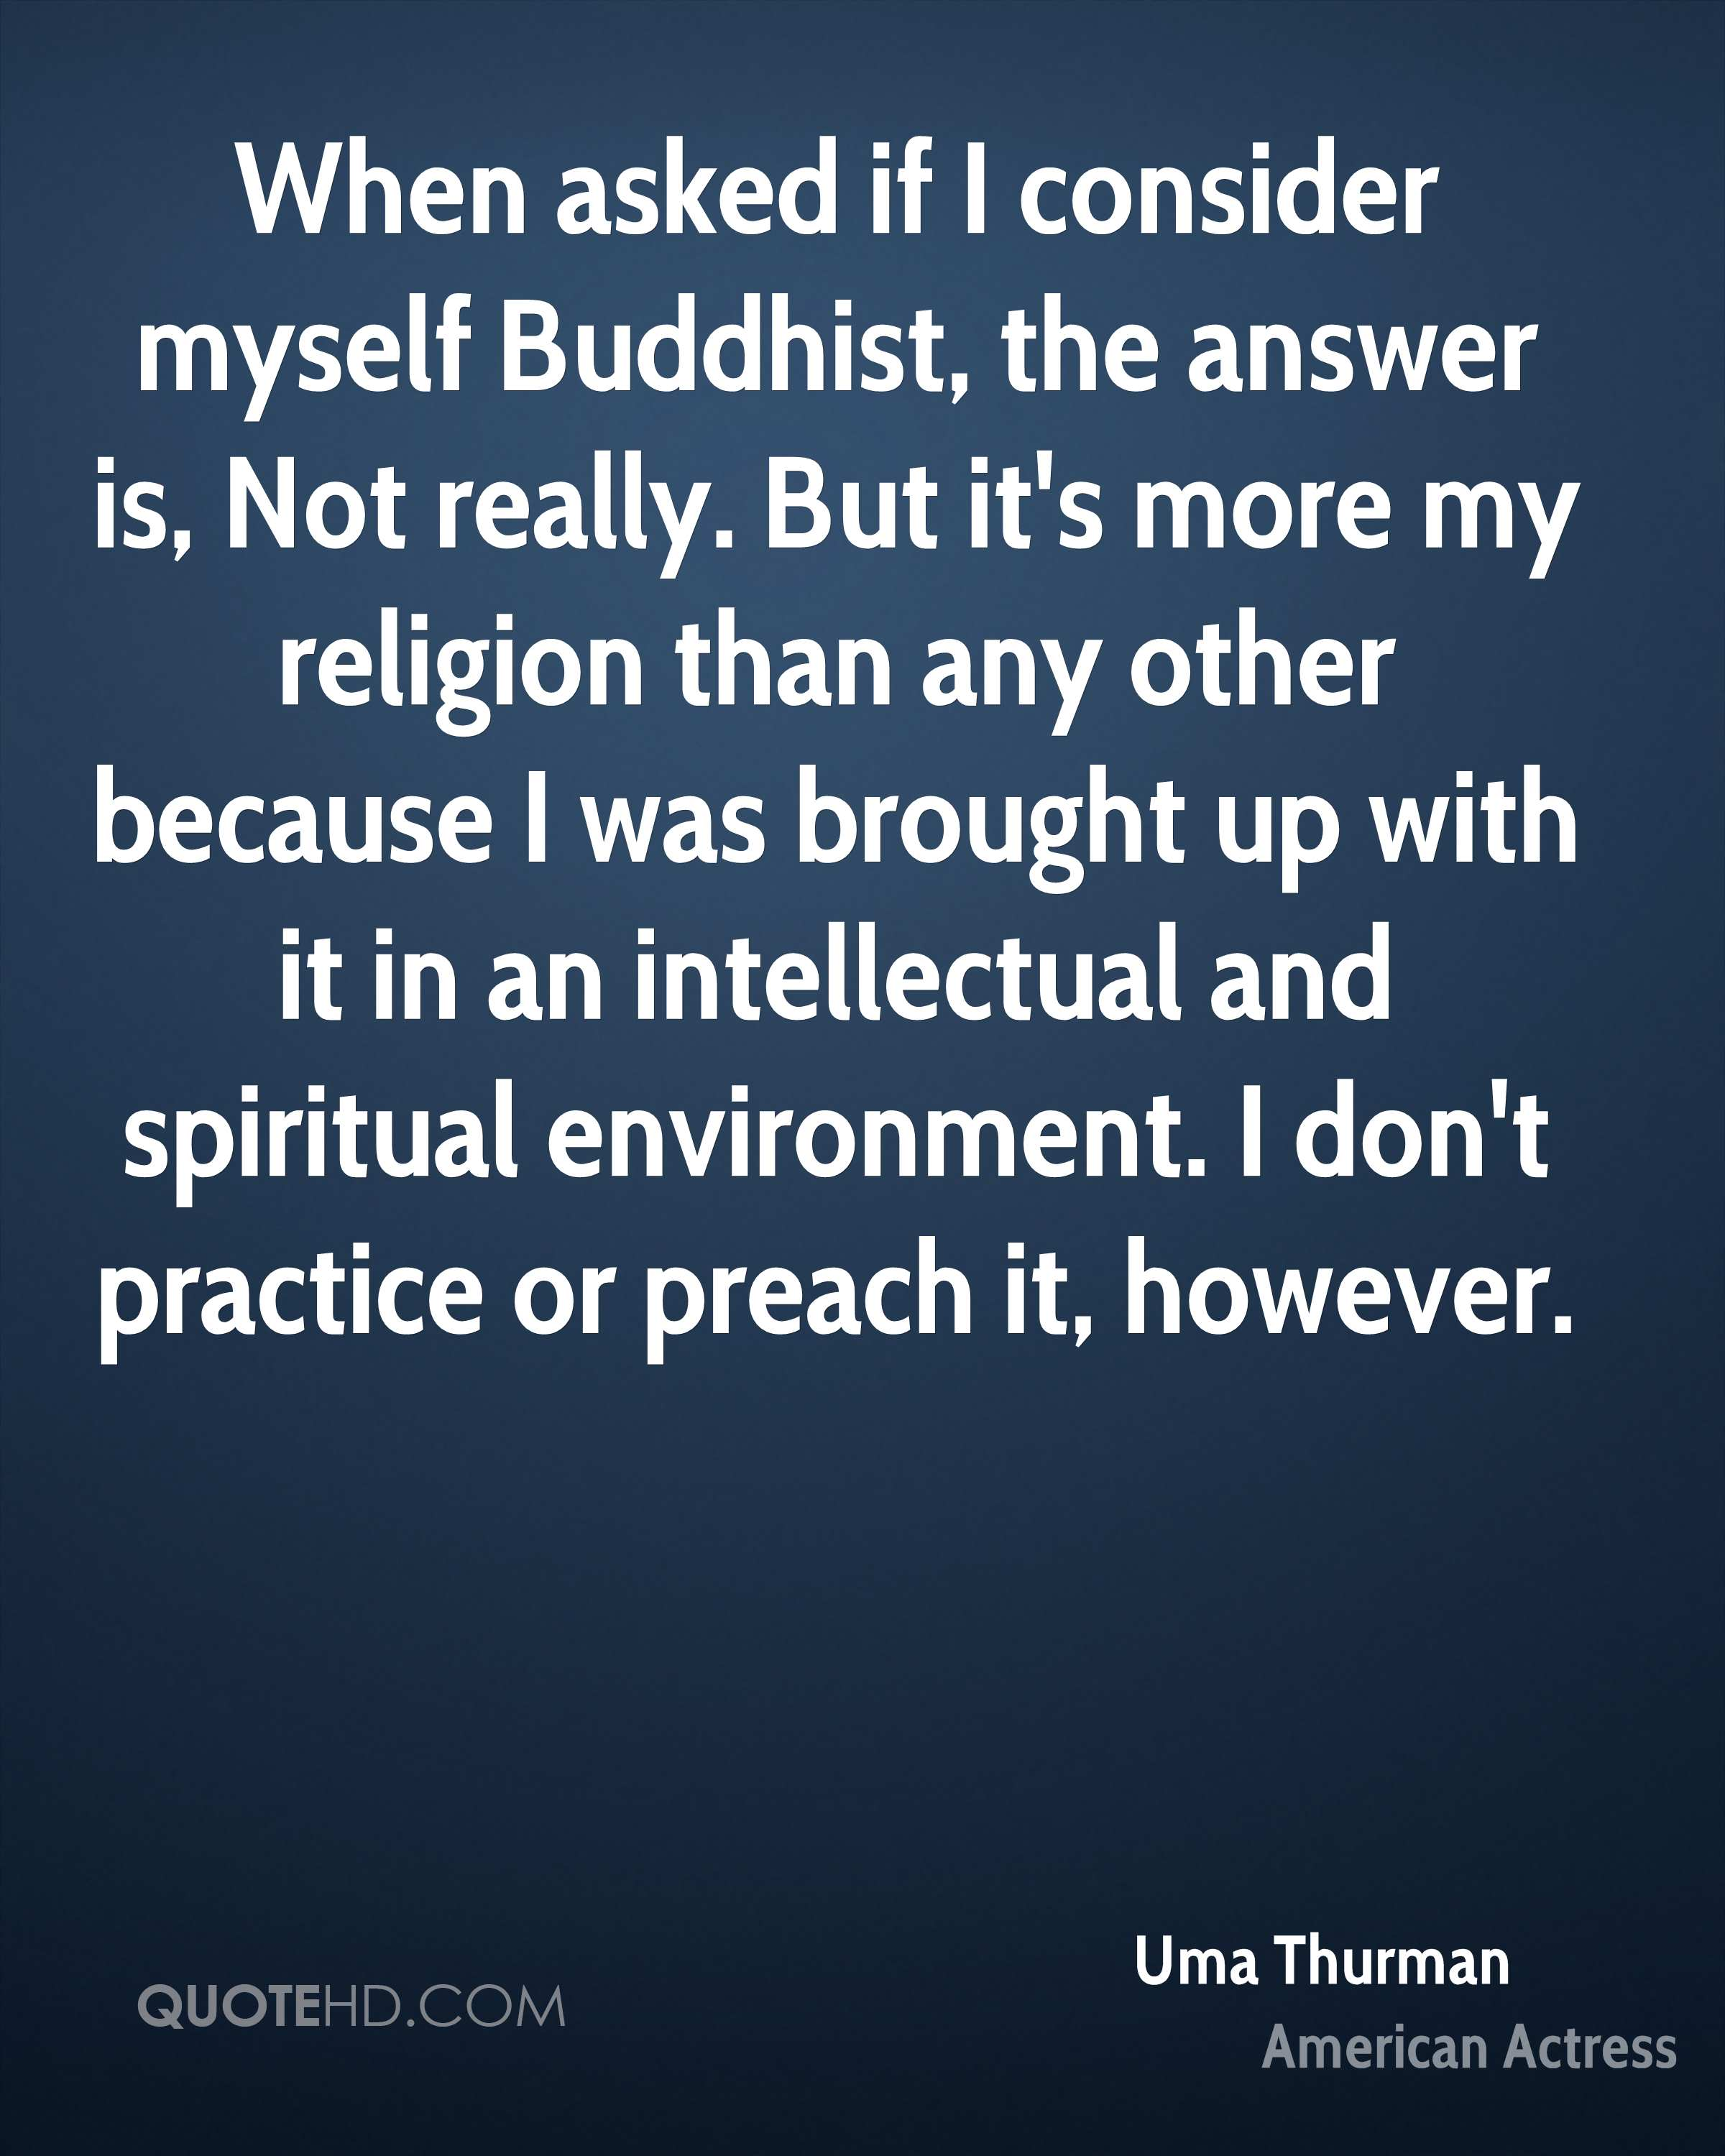 When asked if I consider myself Buddhist, the answer is, Not really. But it's more my religion than any other because I was brought up with it in an intellectual and spiritual environment. I don't practice or preach it, however.